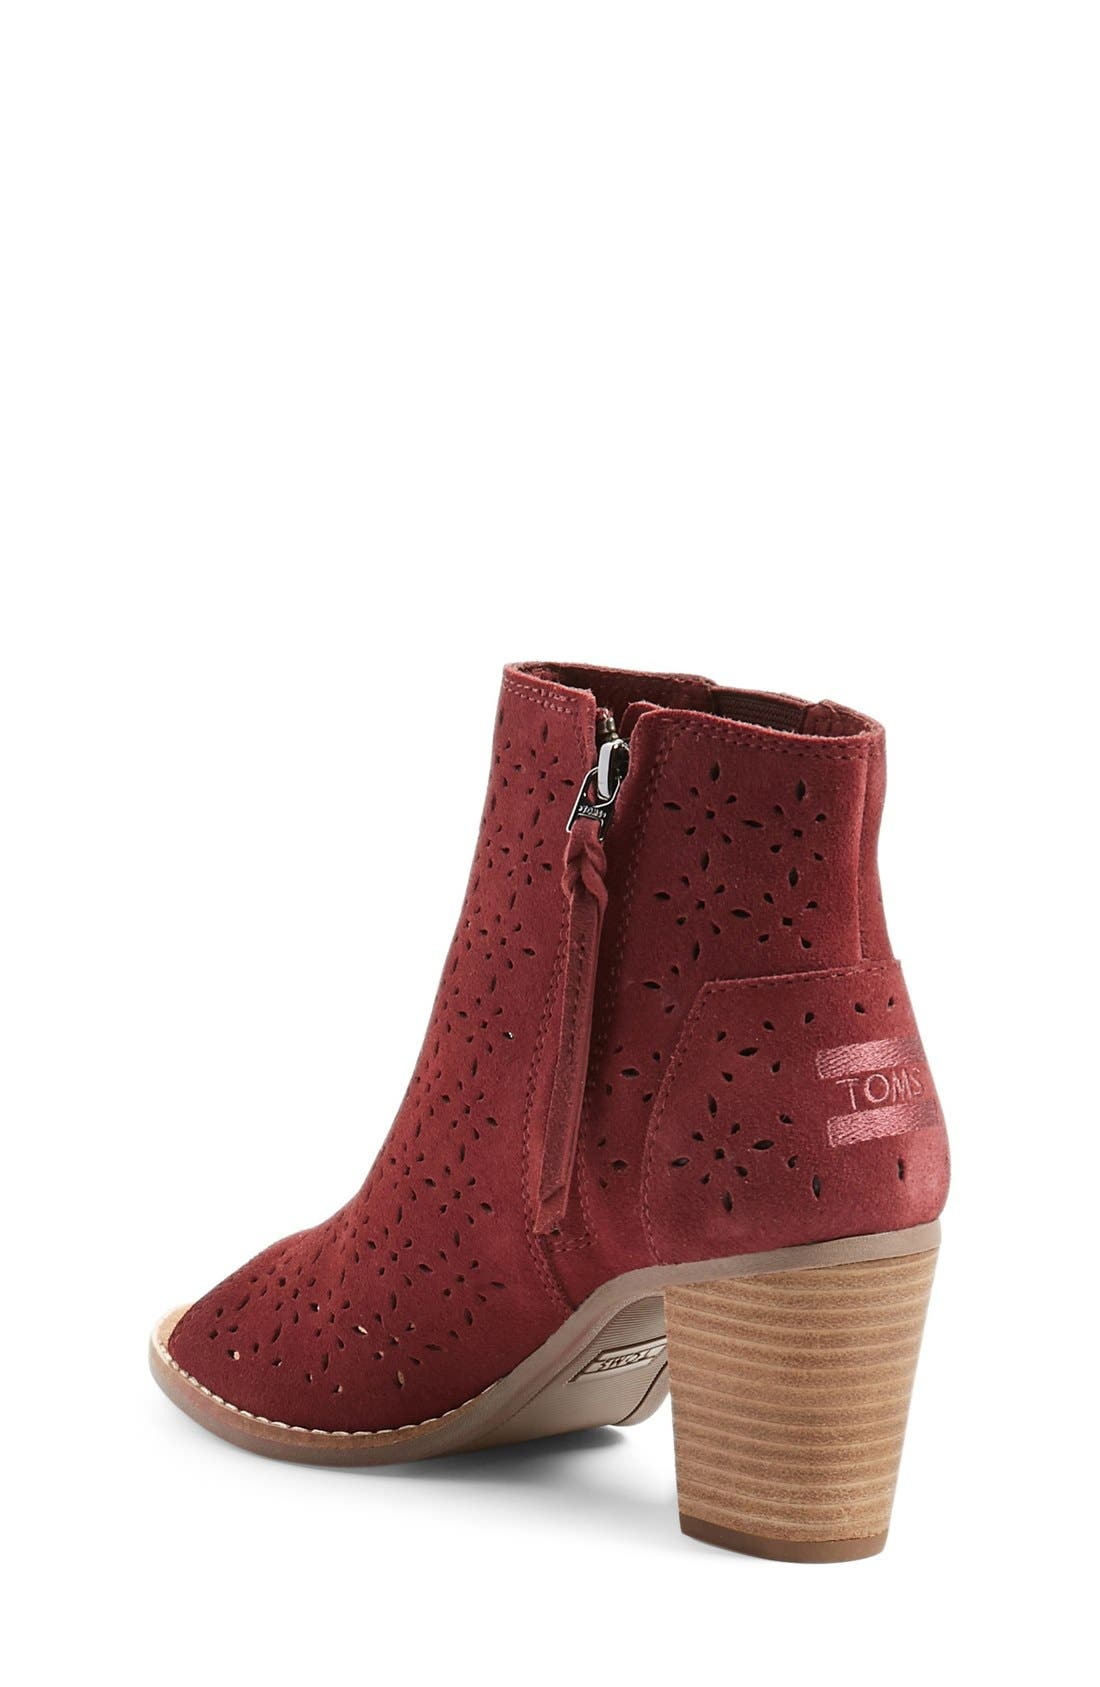 'Majorca' Peep Toe Bootie,                             Alternate thumbnail 2, color,                             Burgundy Suede